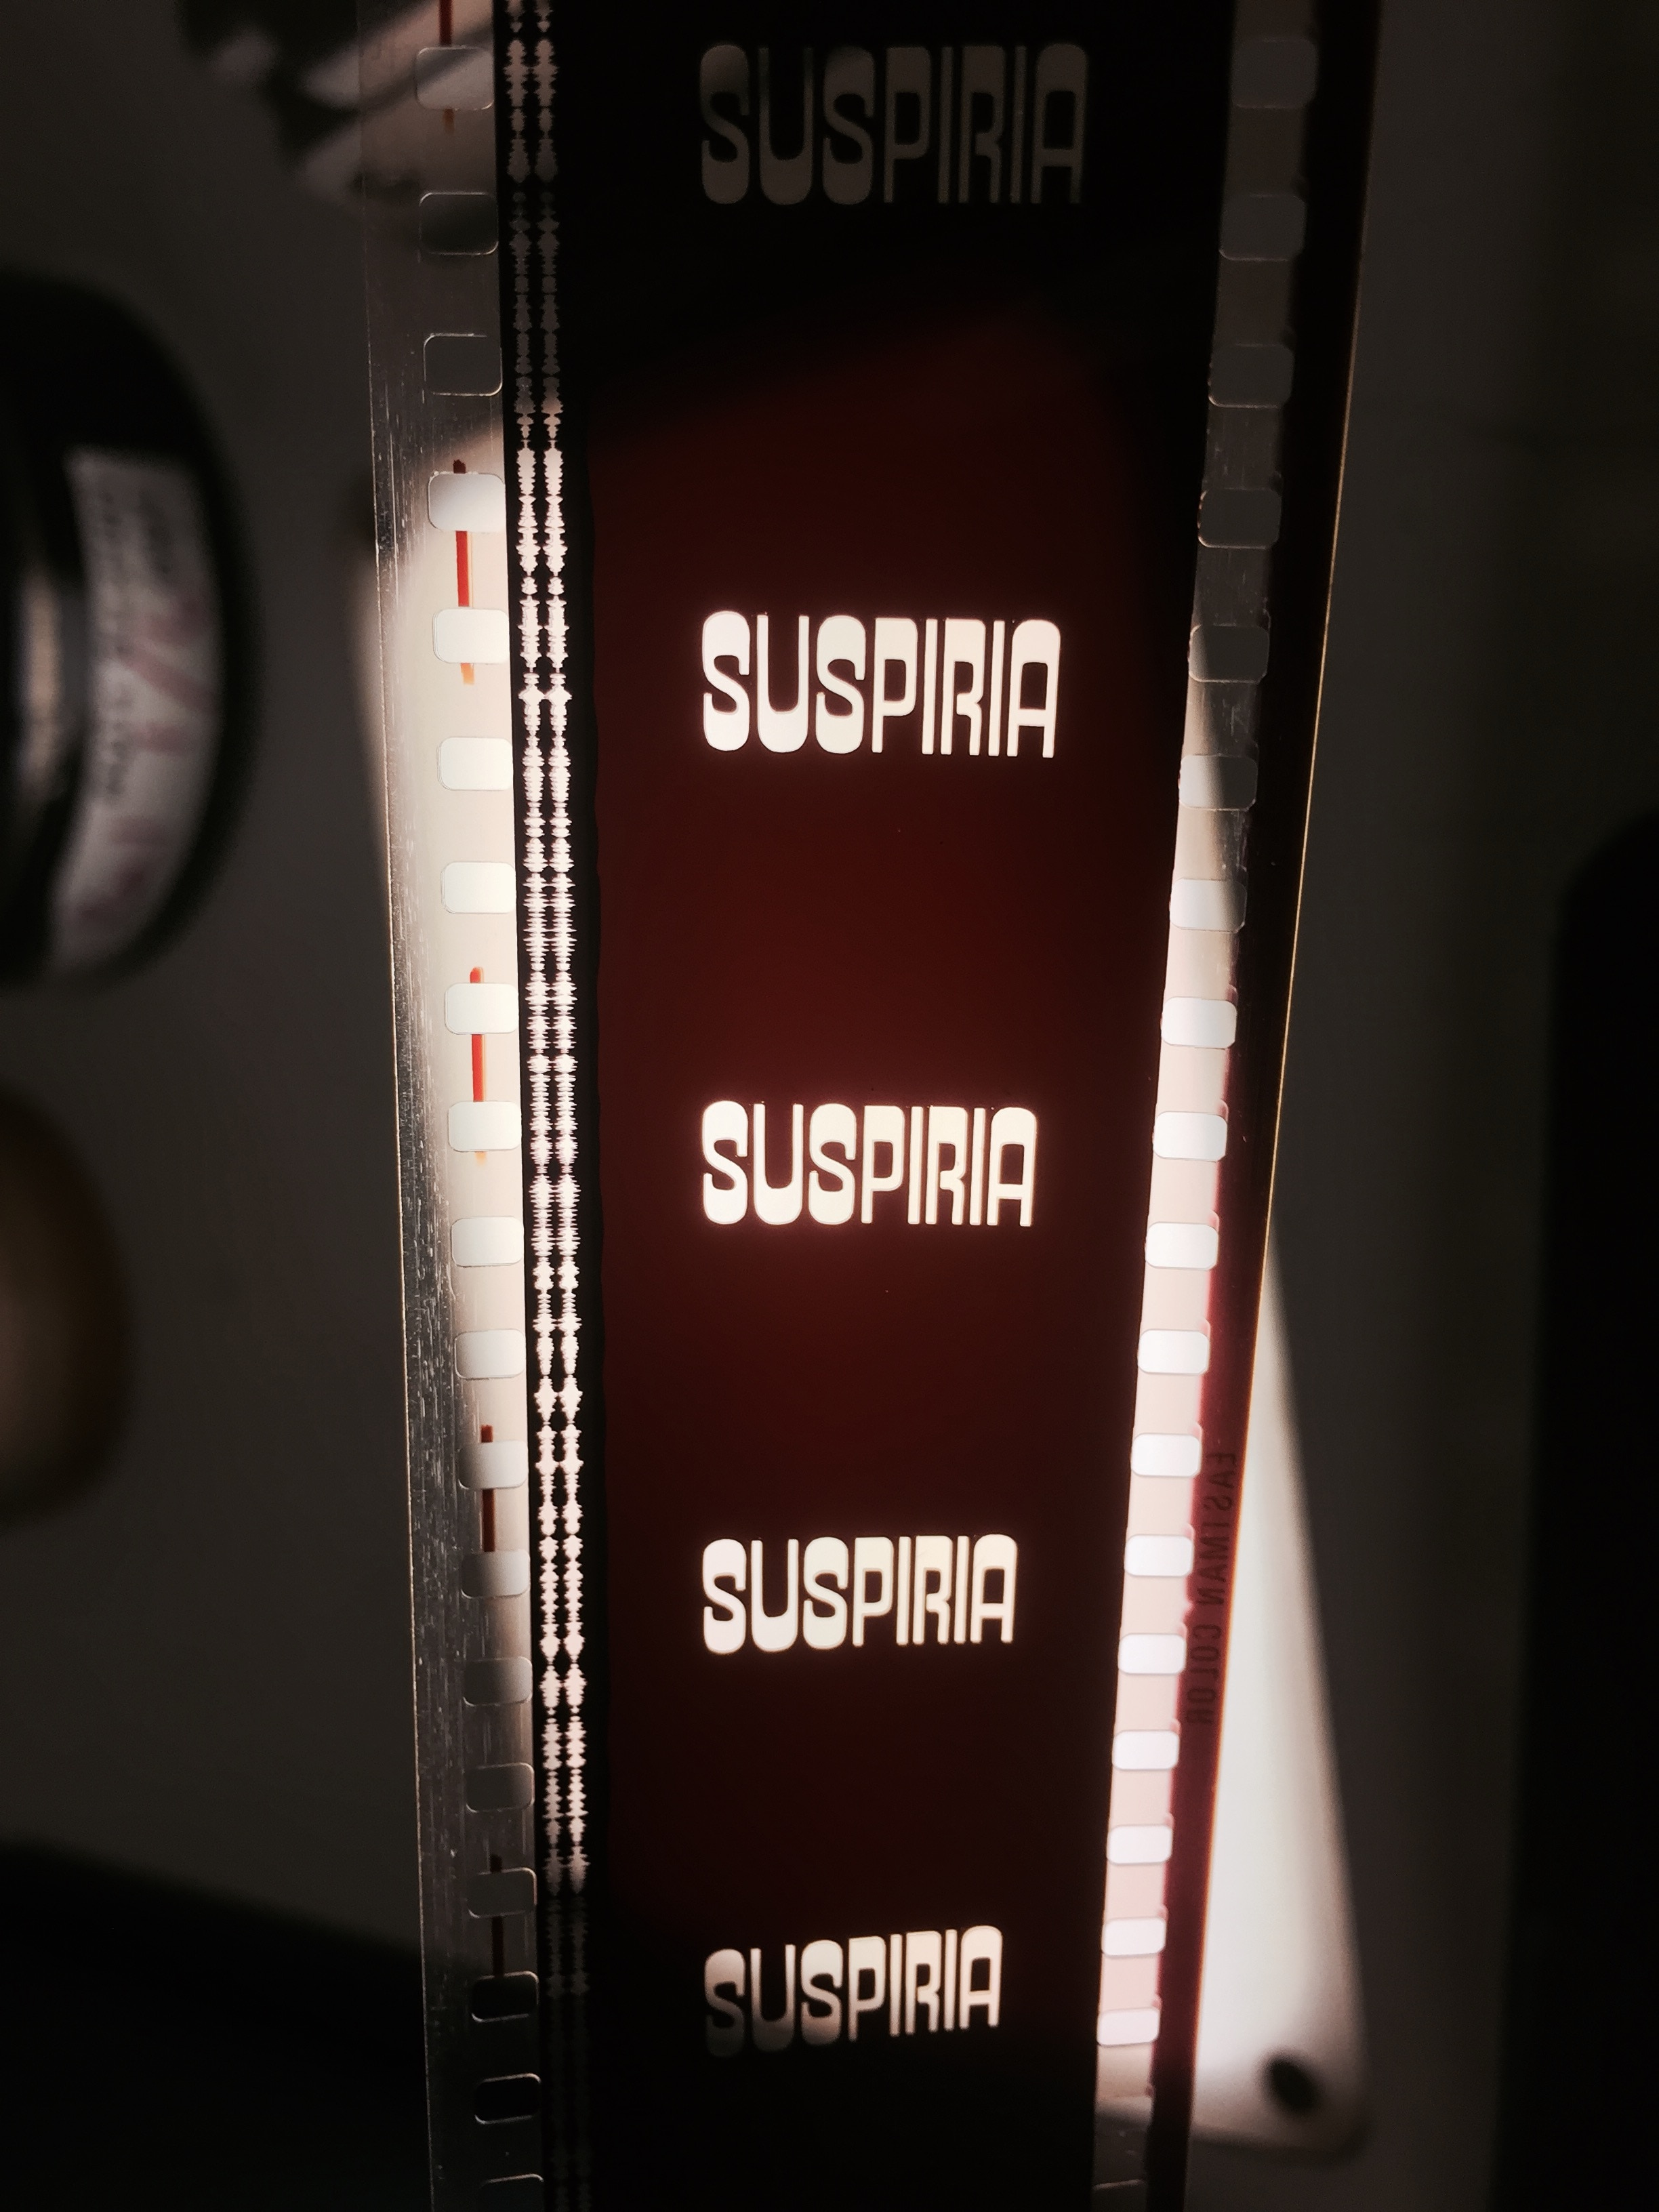 Suspiria pic 1 - Uncut Italian 35MM Print of Suspiria Found and Will Be Projected Across the US